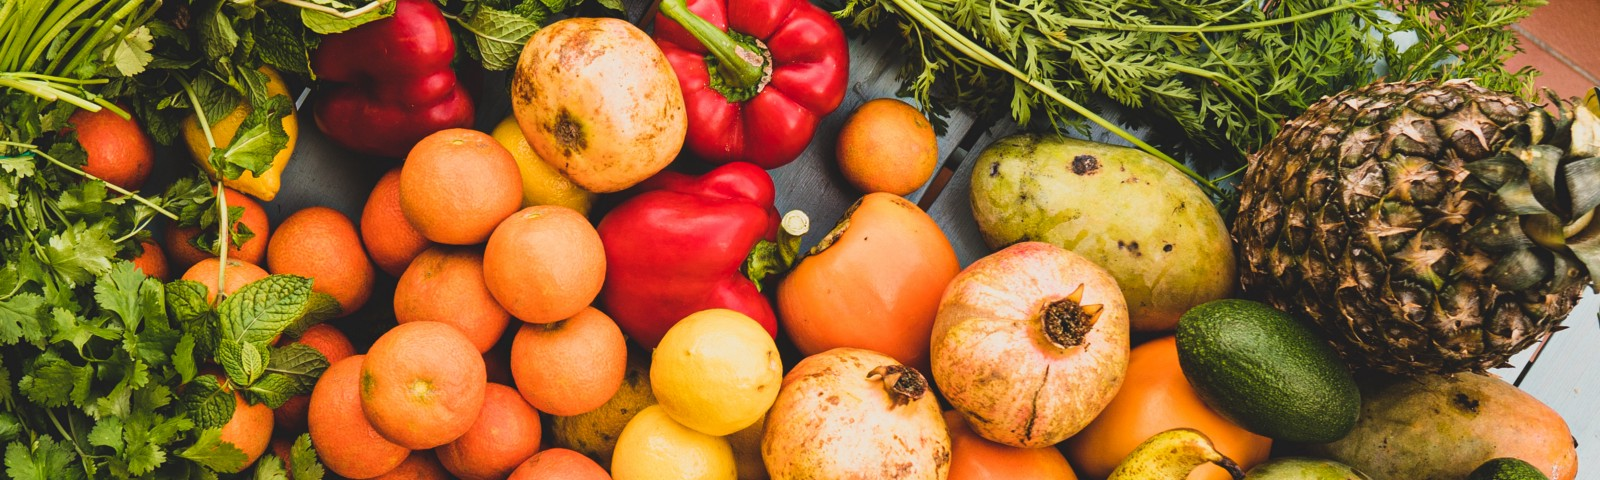 Latest Stories And News About Fruits And Vegetables Medium